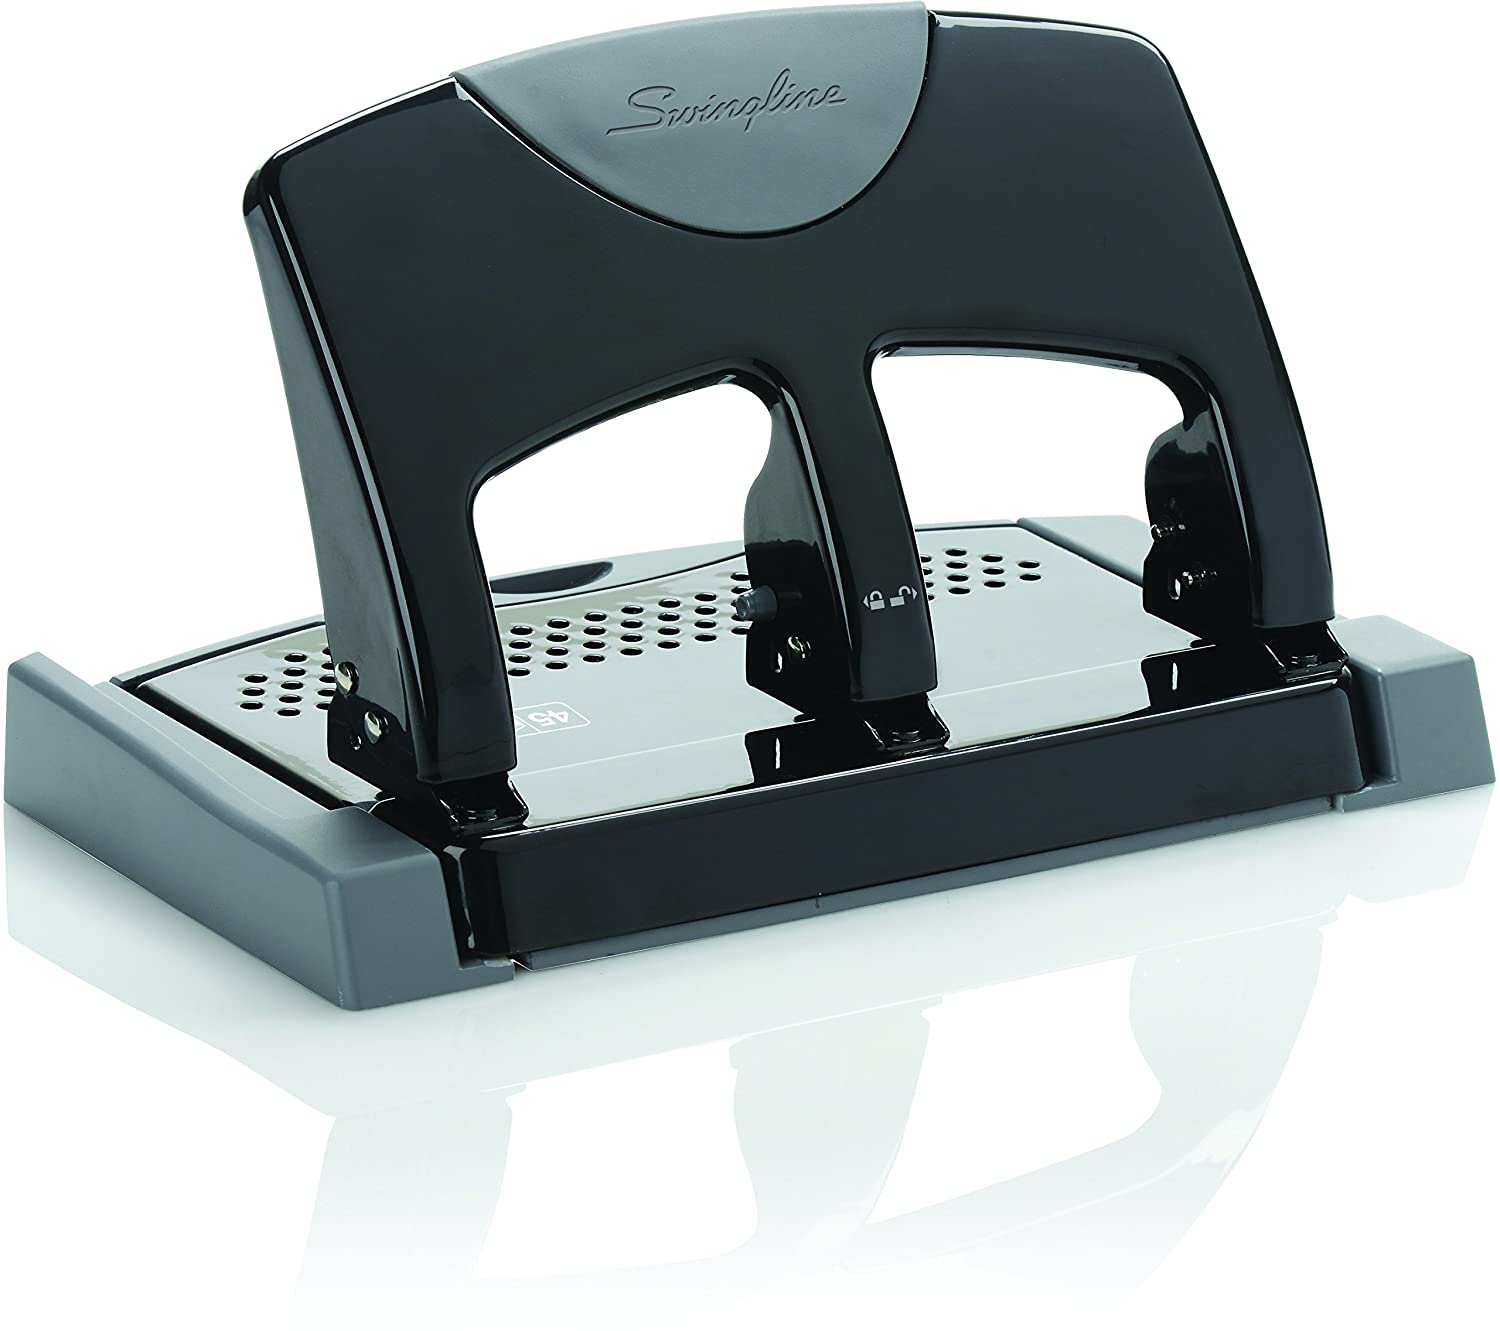 Swingline SmartTouch 3-Hole Punch, Reduced Effort, 12 Sheet Punch Capacity (A7074134) ACCO Brands Canada Inc.